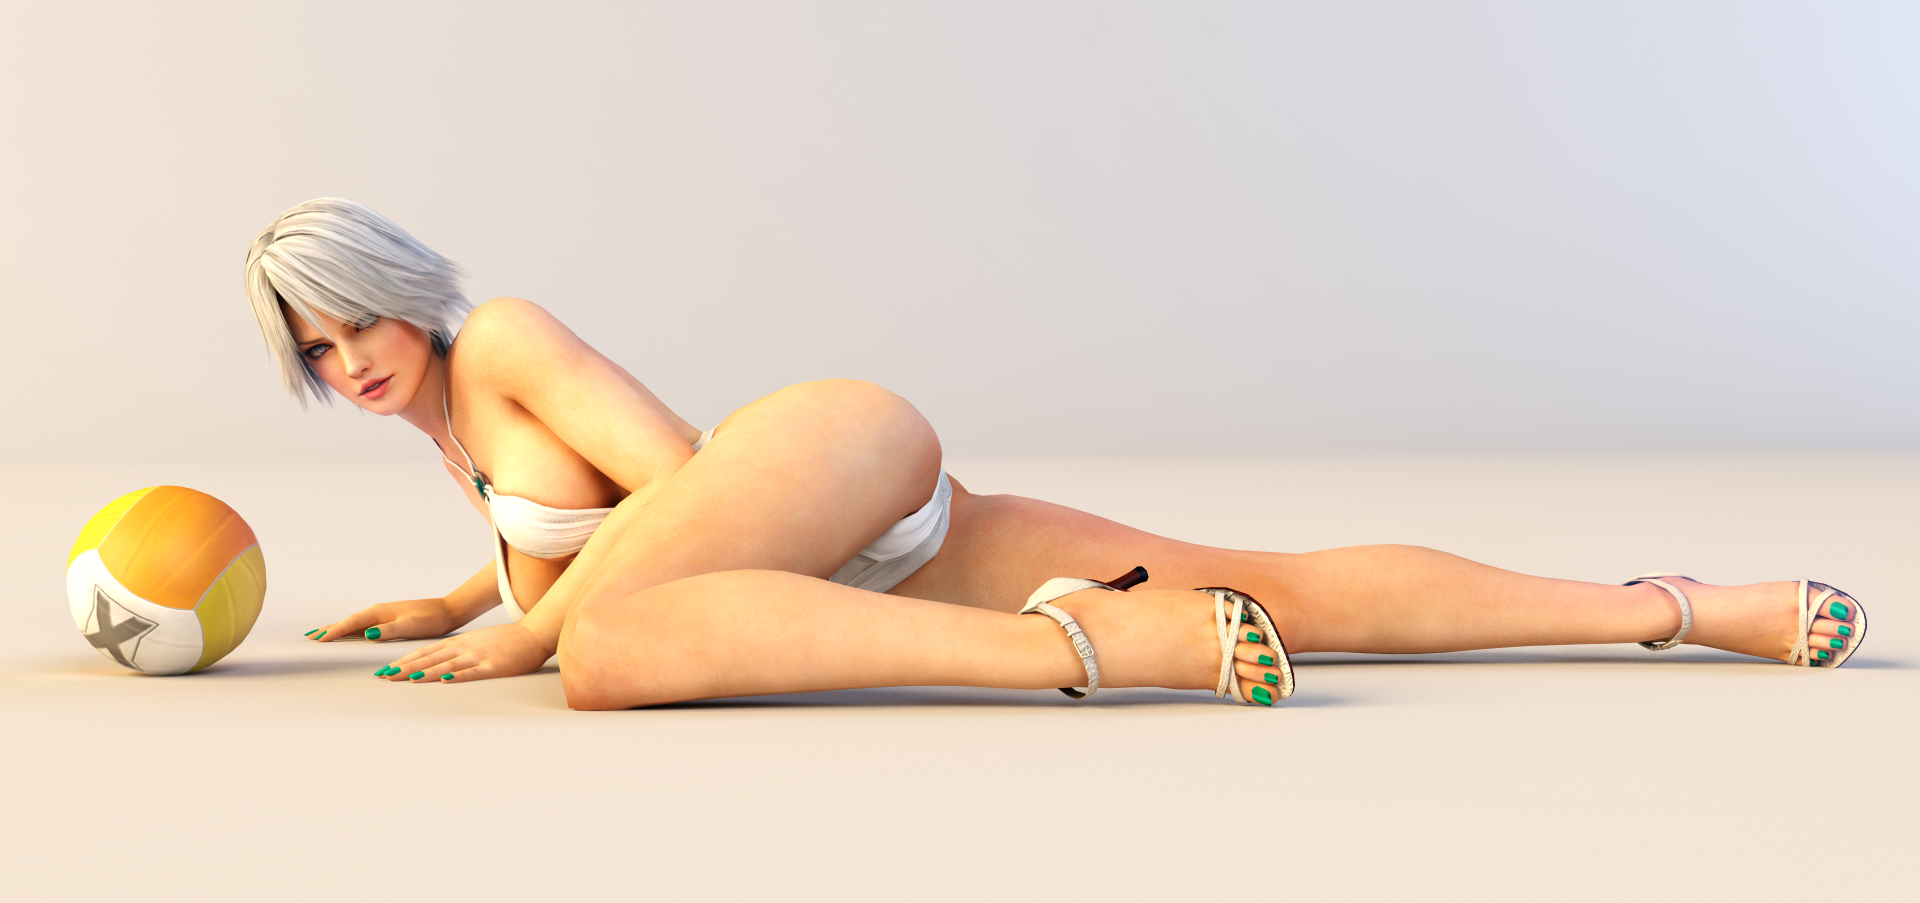 Christie 3DS Render 6 by x2gon